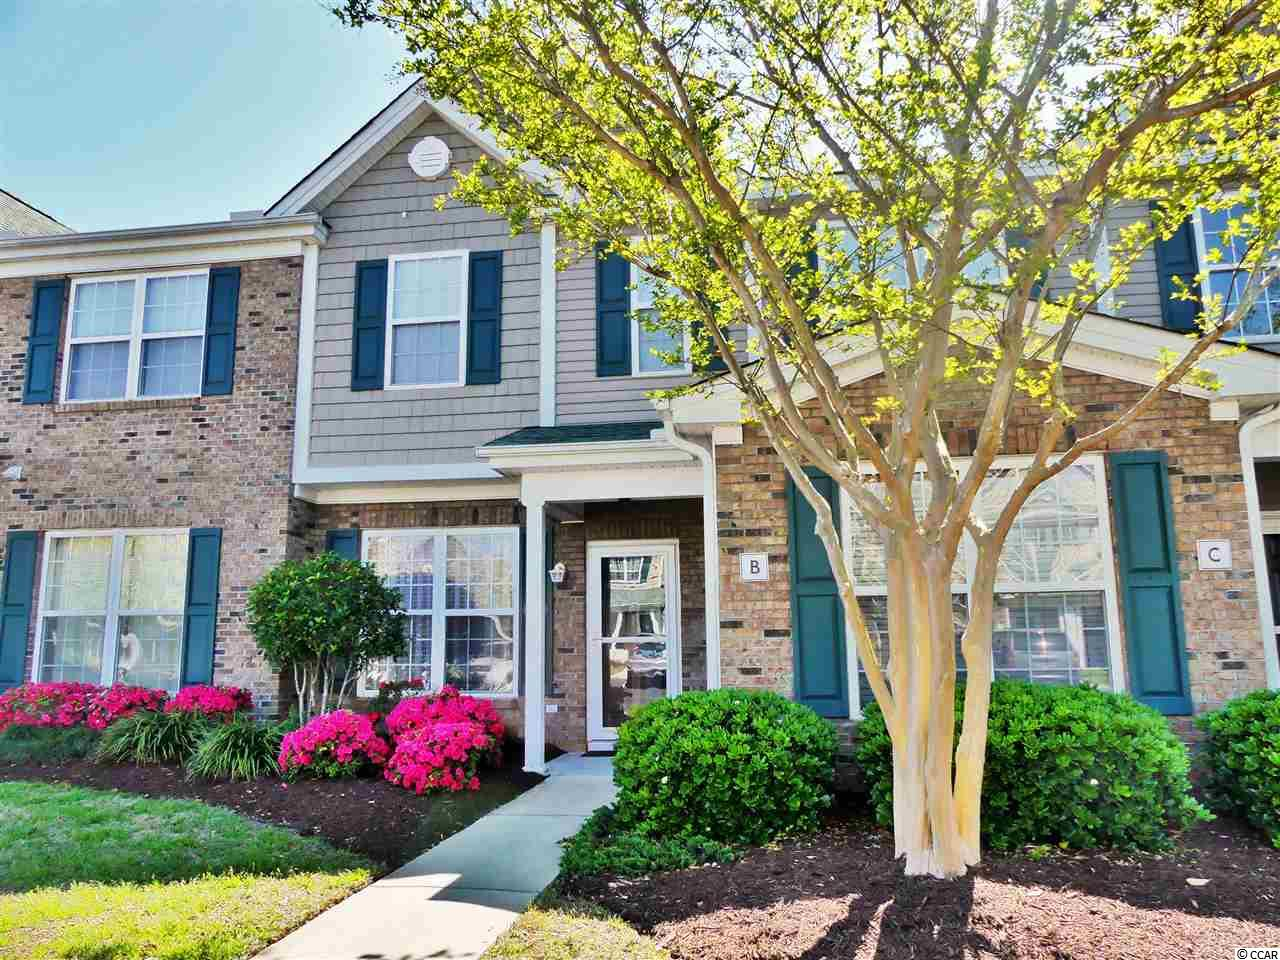 Enjoy the worry-free lifestyle of owning a condo in the heart of Murrells Inlet, SC ! This immaculate 2 bedroom features a low monthly HOA fee, a central location, and boasts a quaint covered rear patio. Park West is within a short distance to medical , shopping, and the famous Marshwalk! This one is a must see and will sell fast at this affordable price.